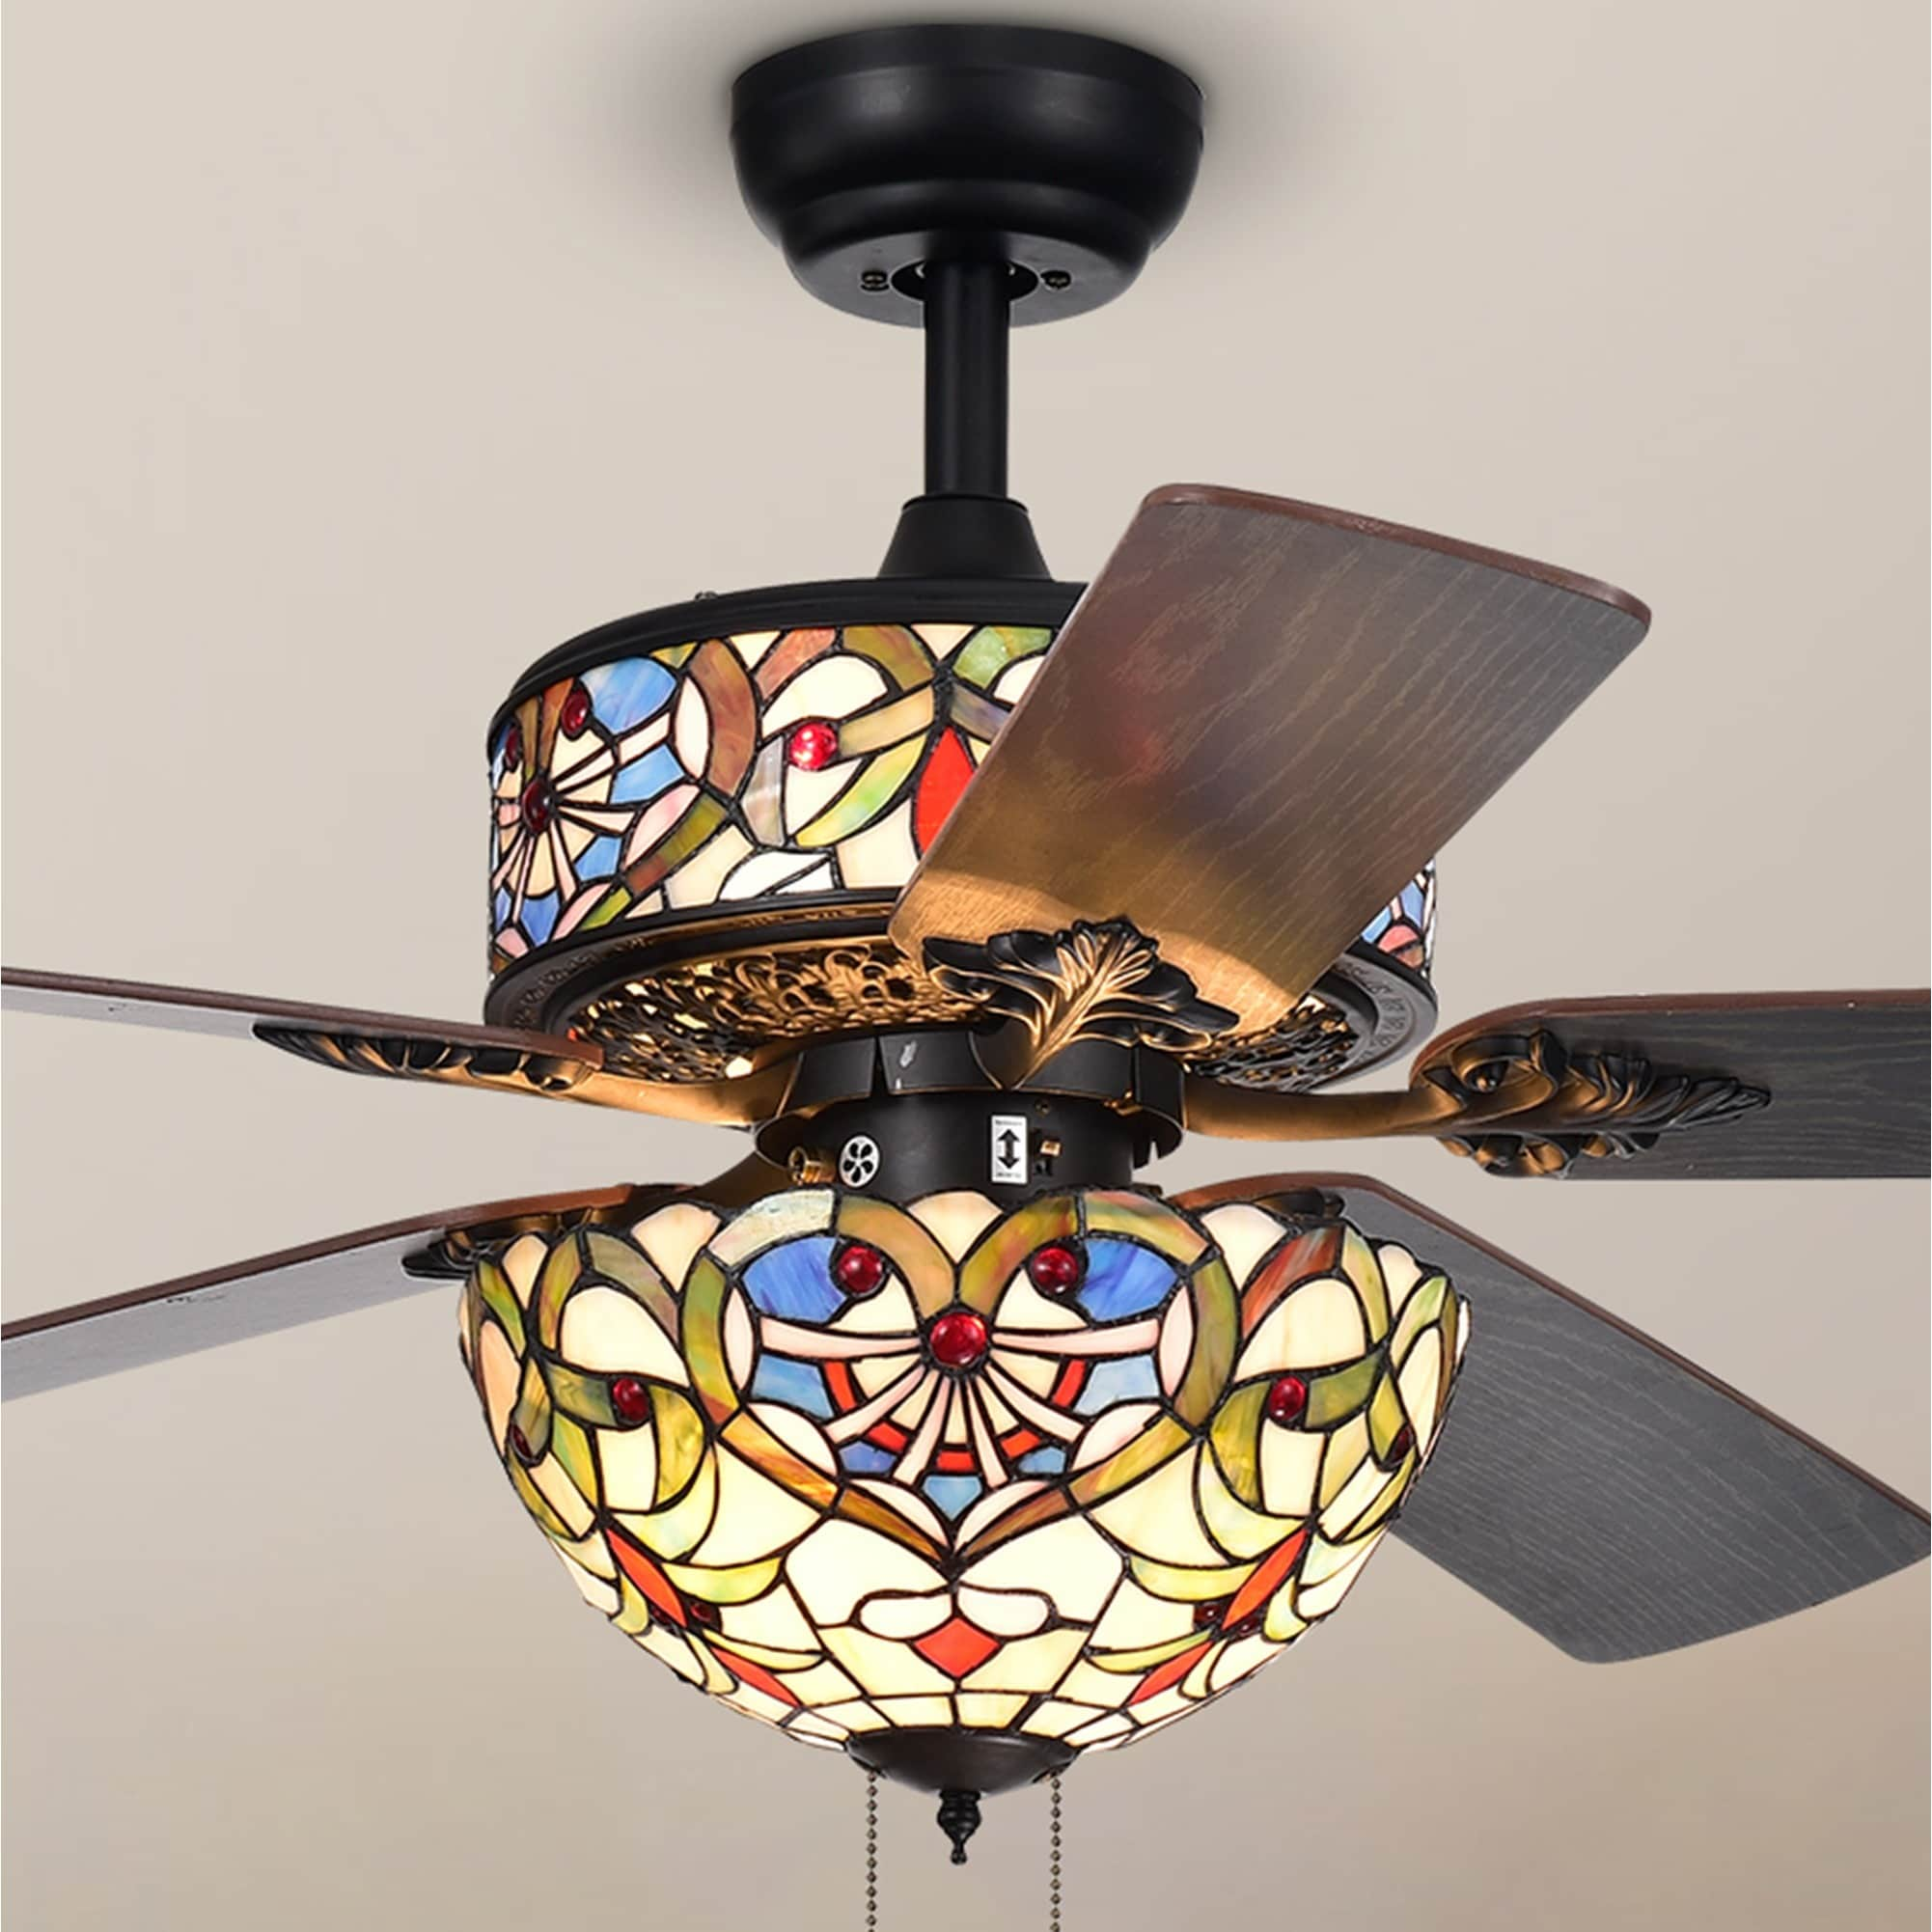 kit modern tiffany design decorative light ceiling fan image of designs style